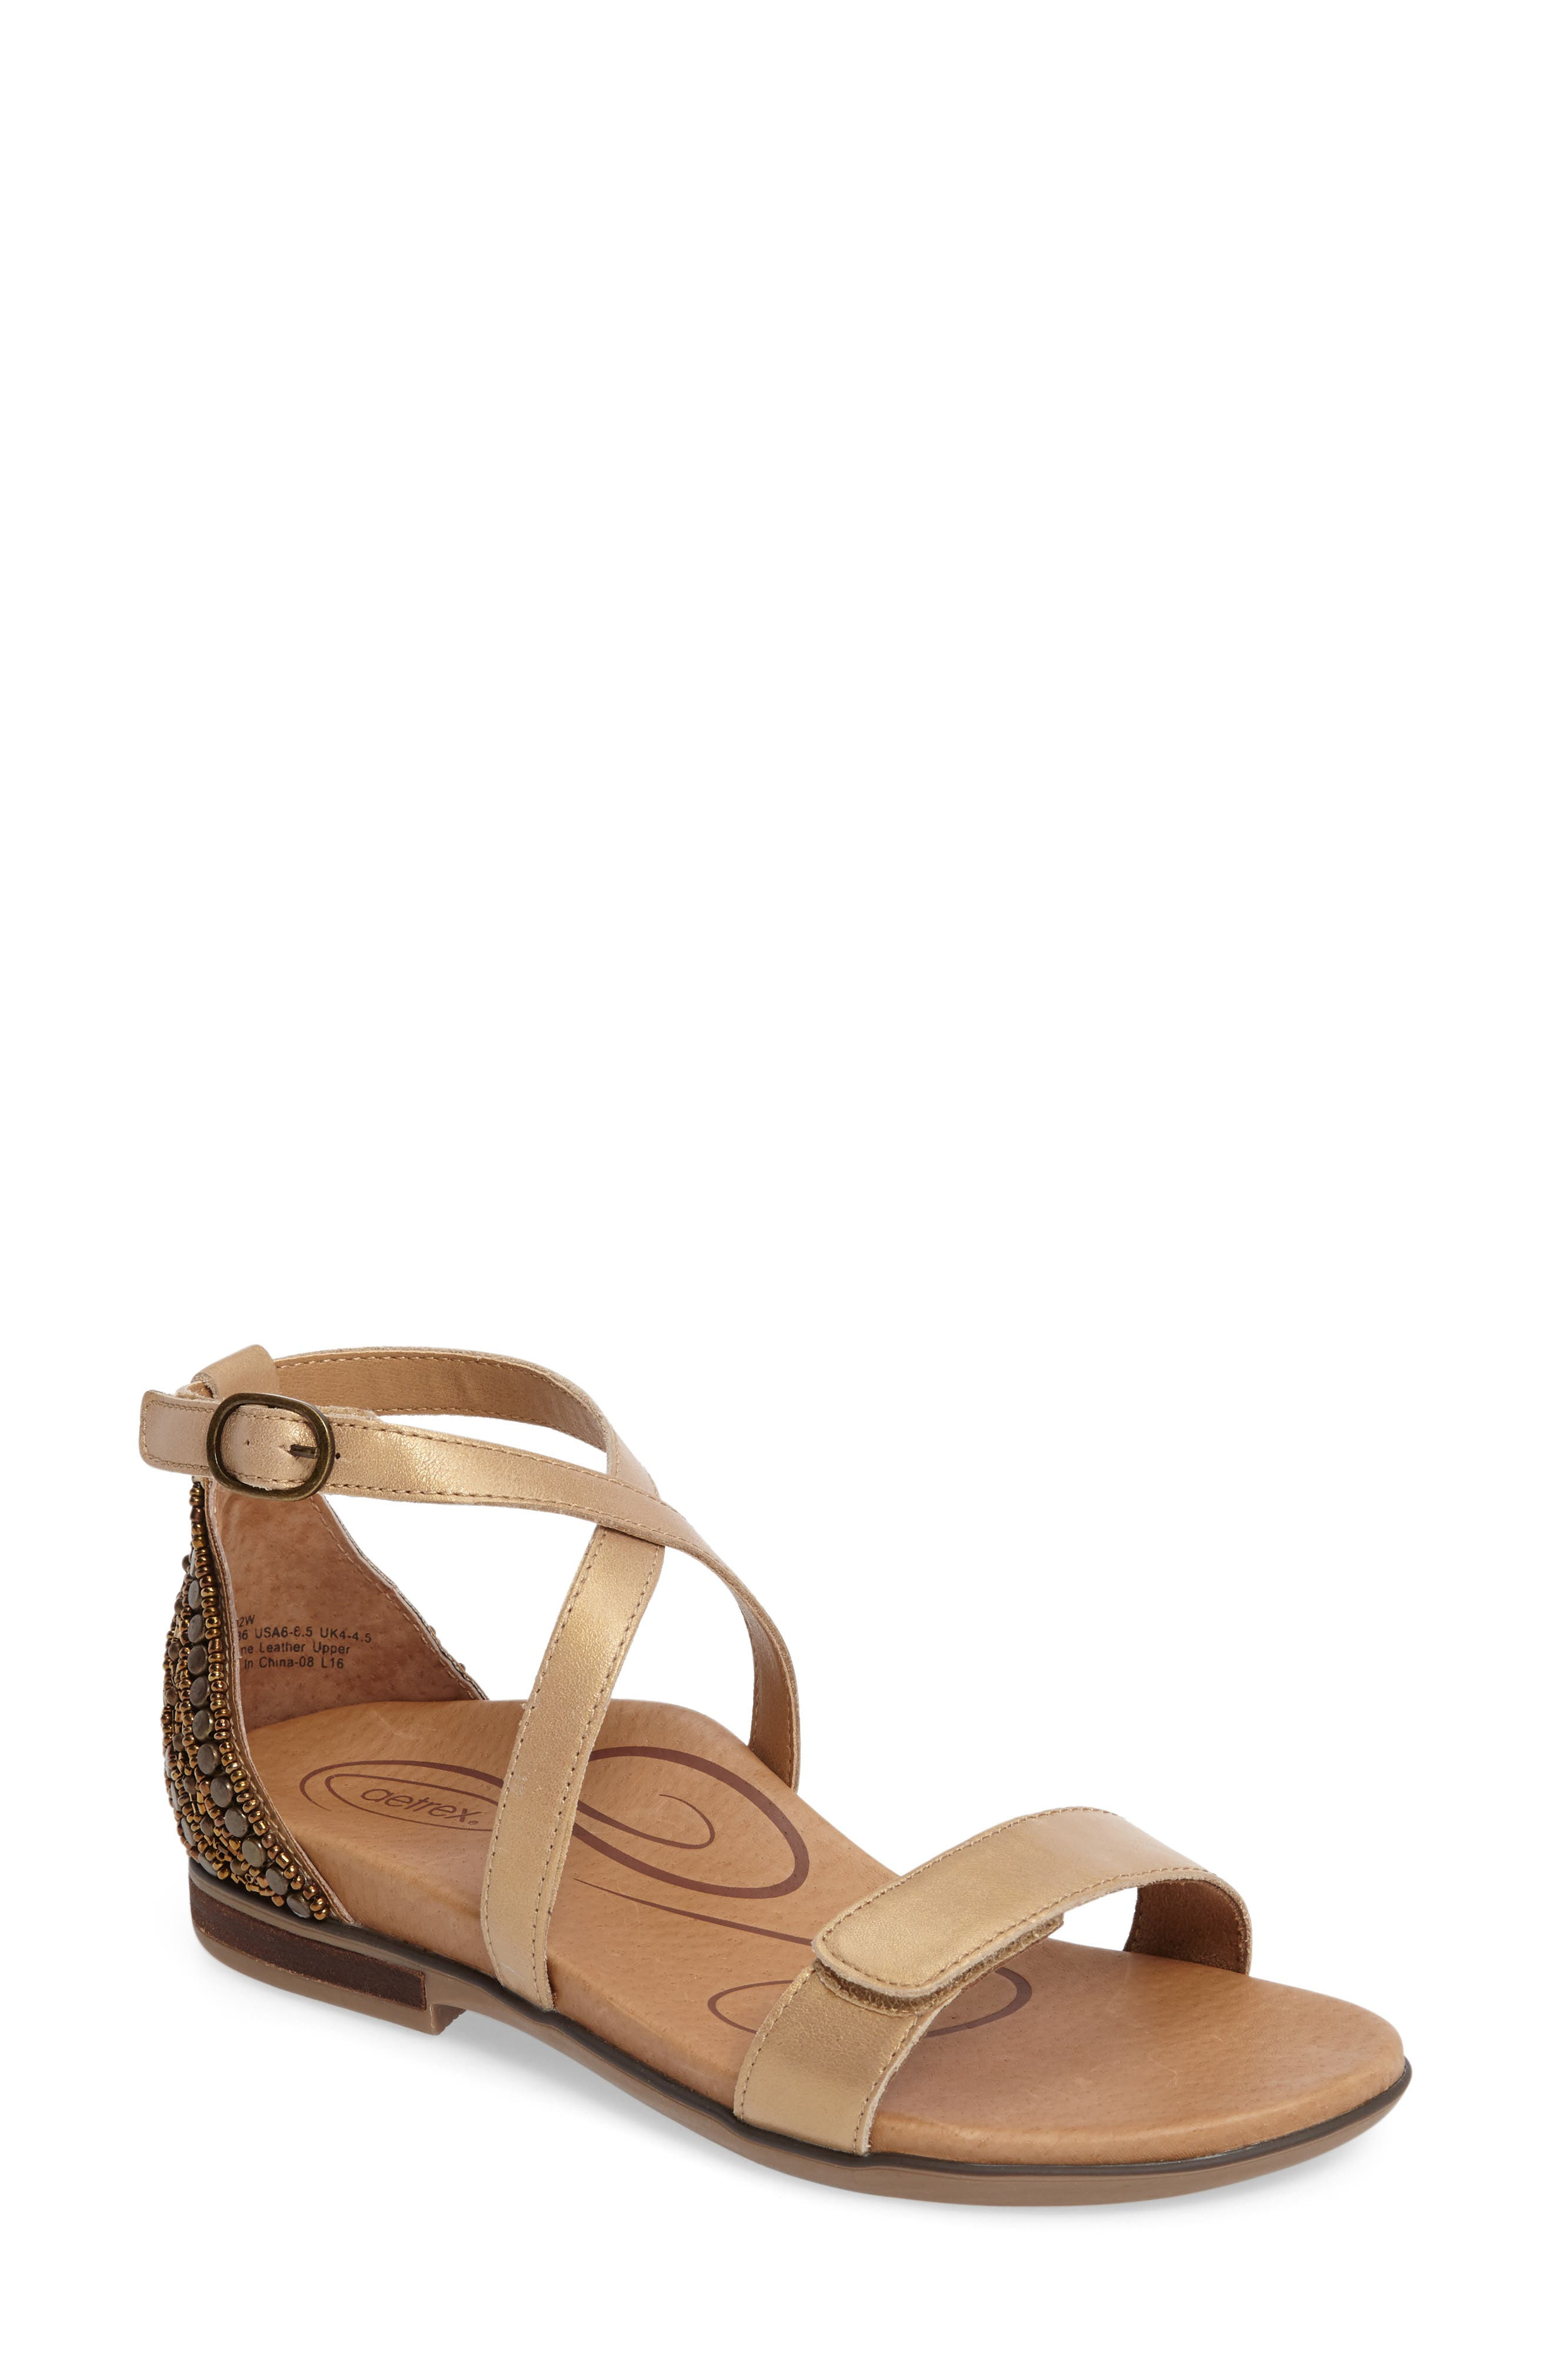 AETREX, Brenda Embellished Cross Strap Sandal, Main thumbnail 1, color, STONE LEATHER